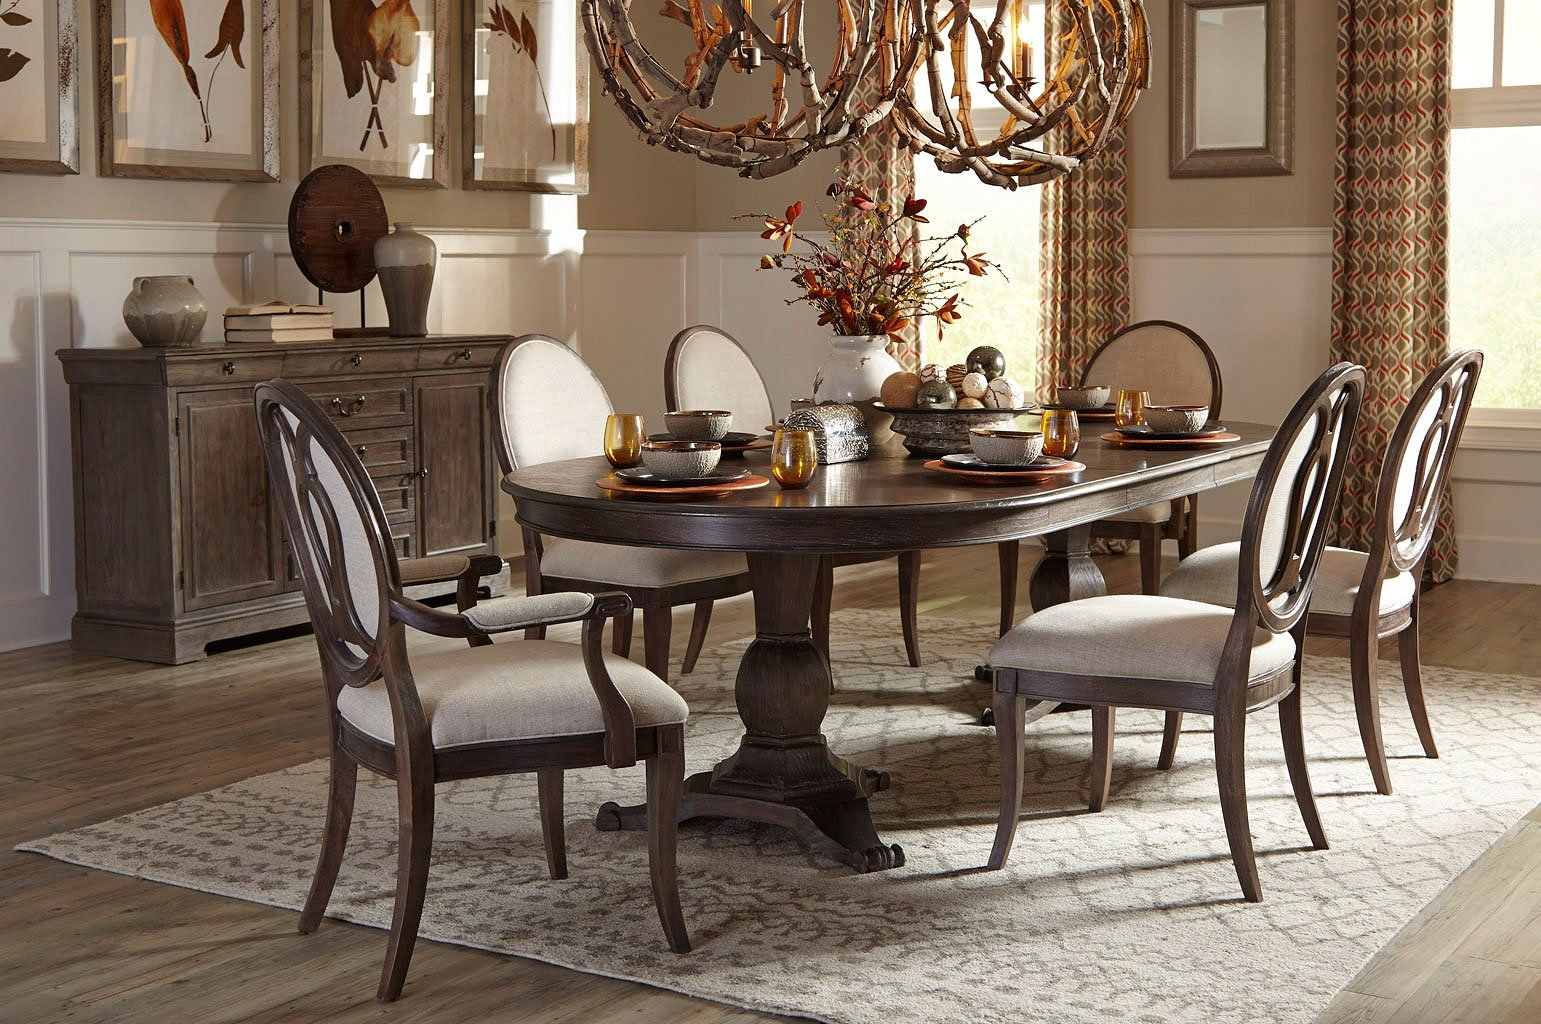 Saint germain oval dining room set w oval back chairs